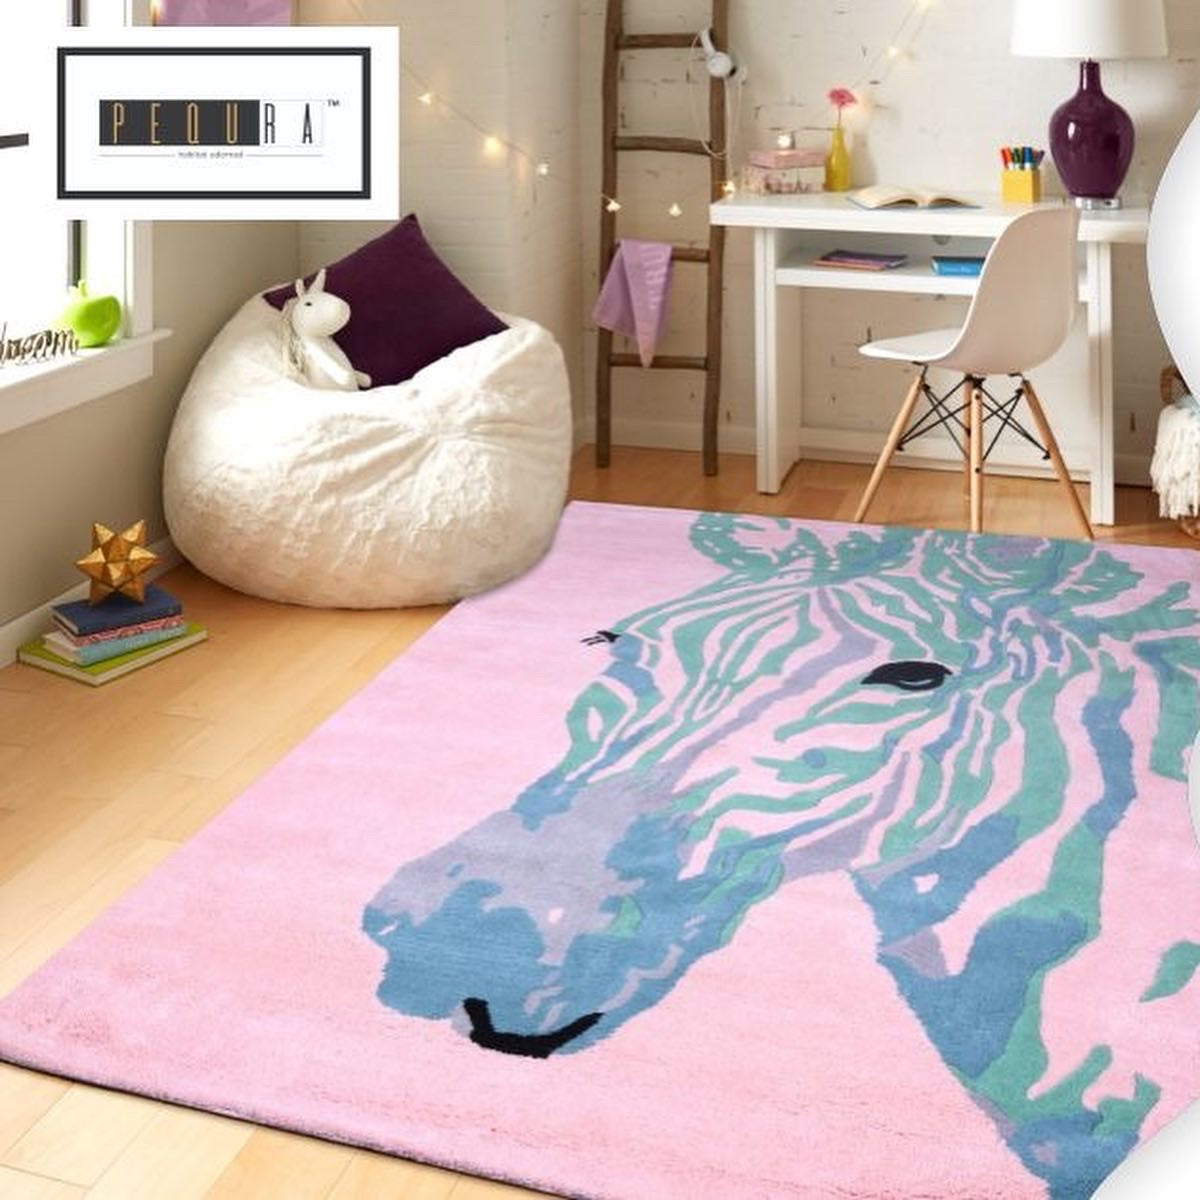 5 tips for Buying Kids Rugs